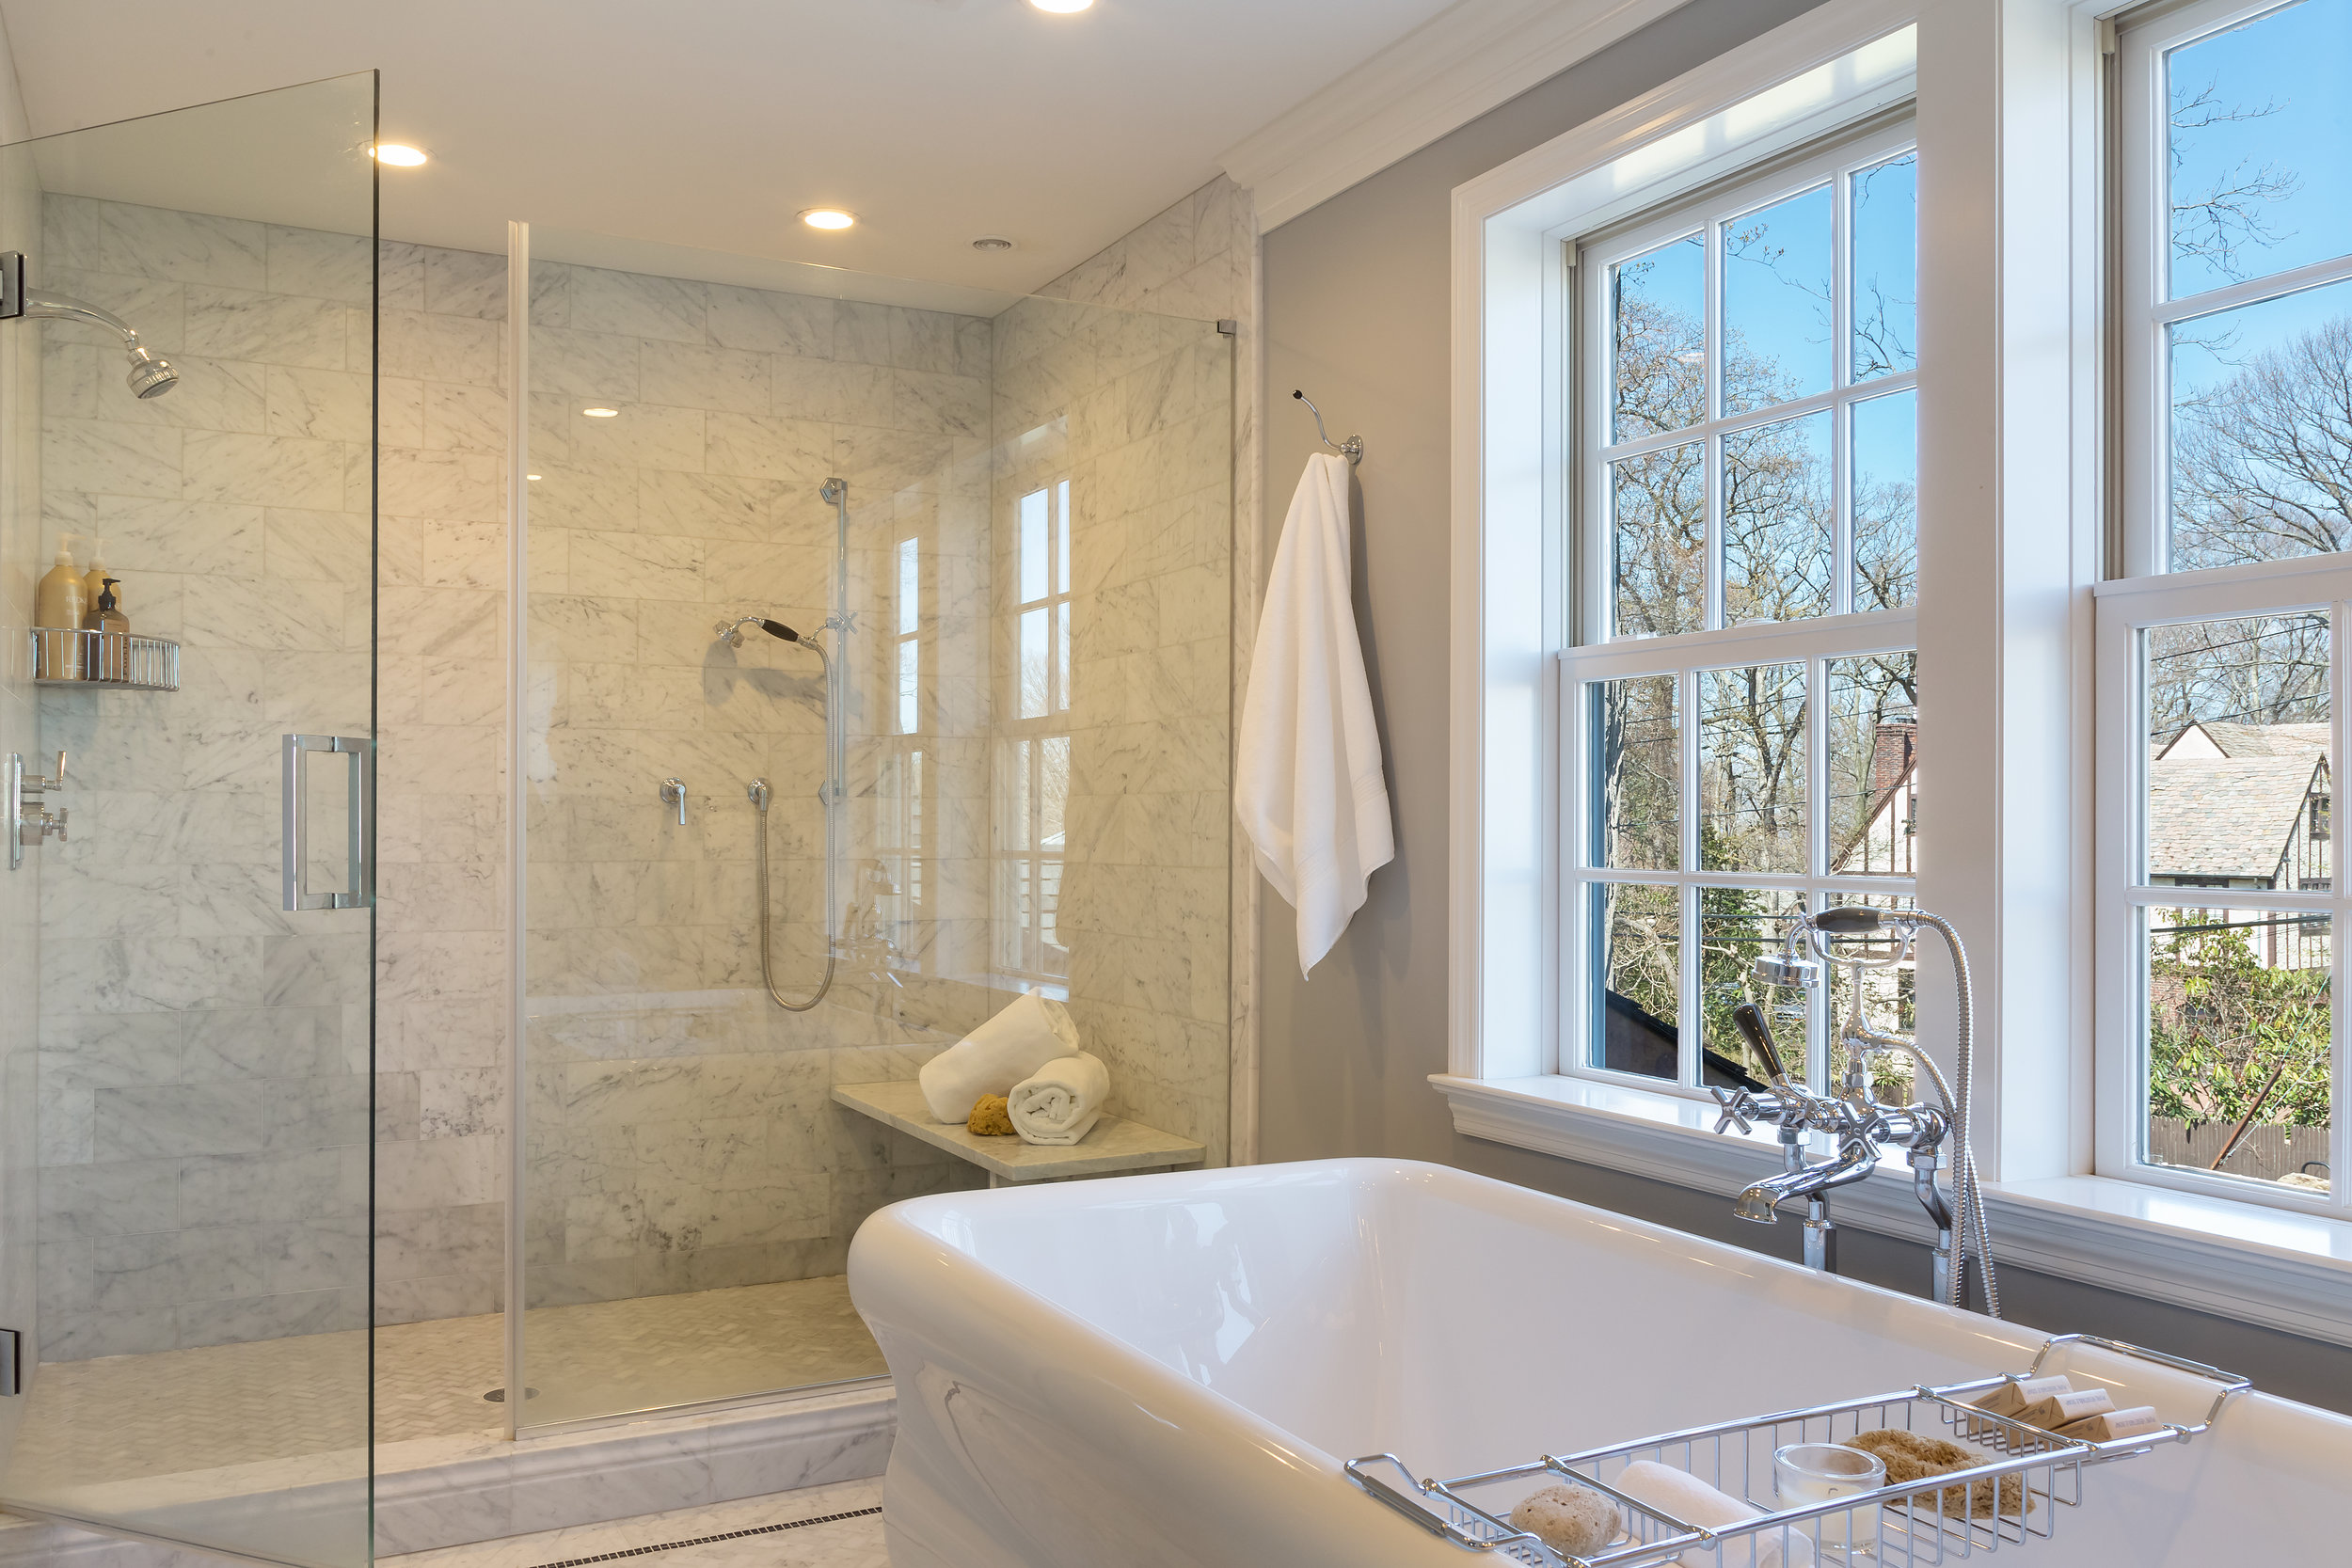 Large bathroom with ceramic plunge tub and separate glass walled shower